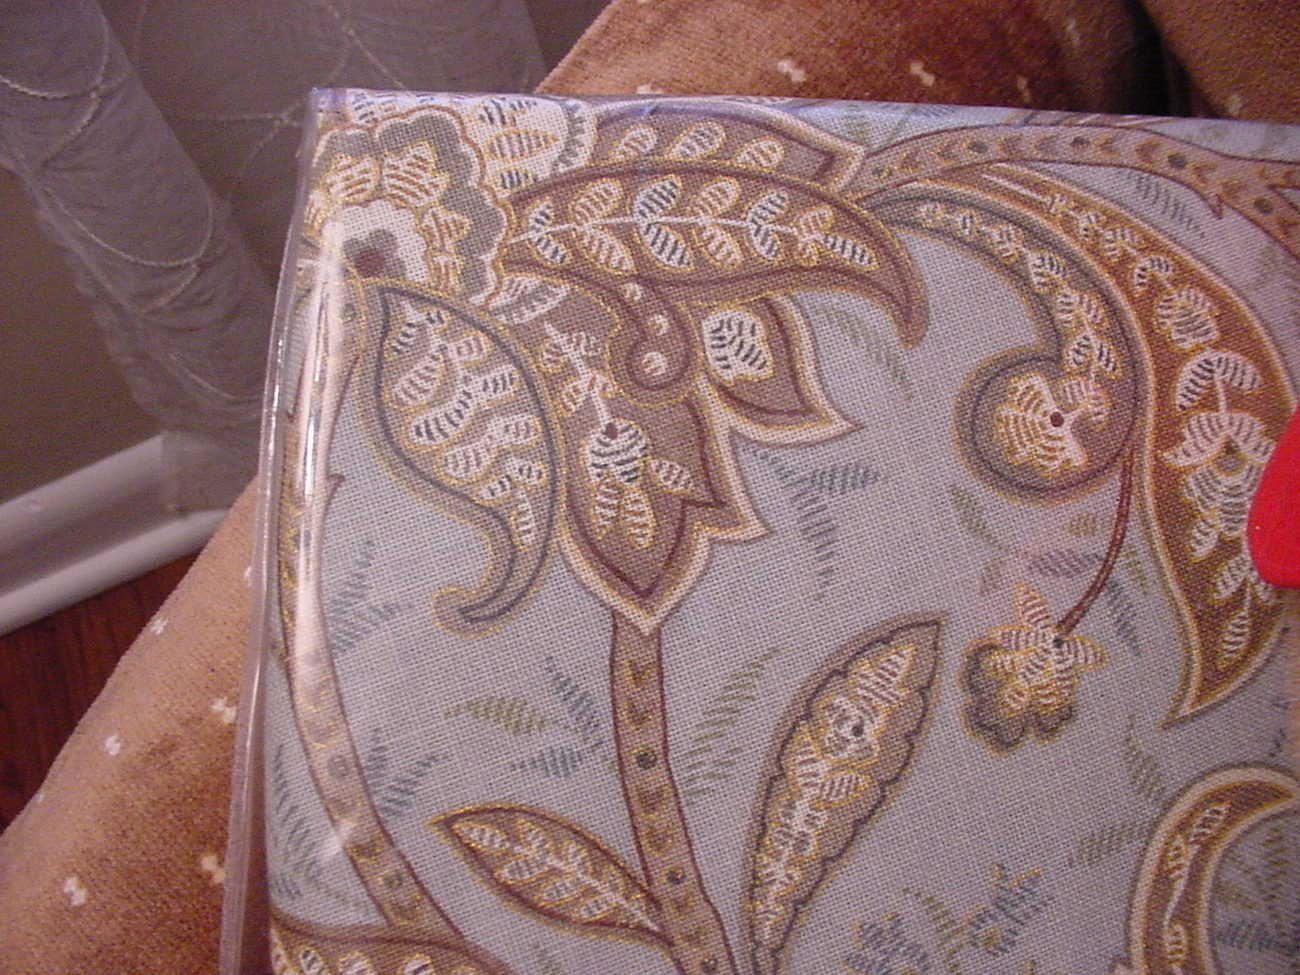 New Listing Tahari Home Floral Paisley Tablecloths Assorted Sizes Oblong and Round blu.. This is a beautiful Floral Paisley Tablecloth from Tahari. The design in the tablecloth is a floral paisley in shades Gray and Light Gold on a White background.